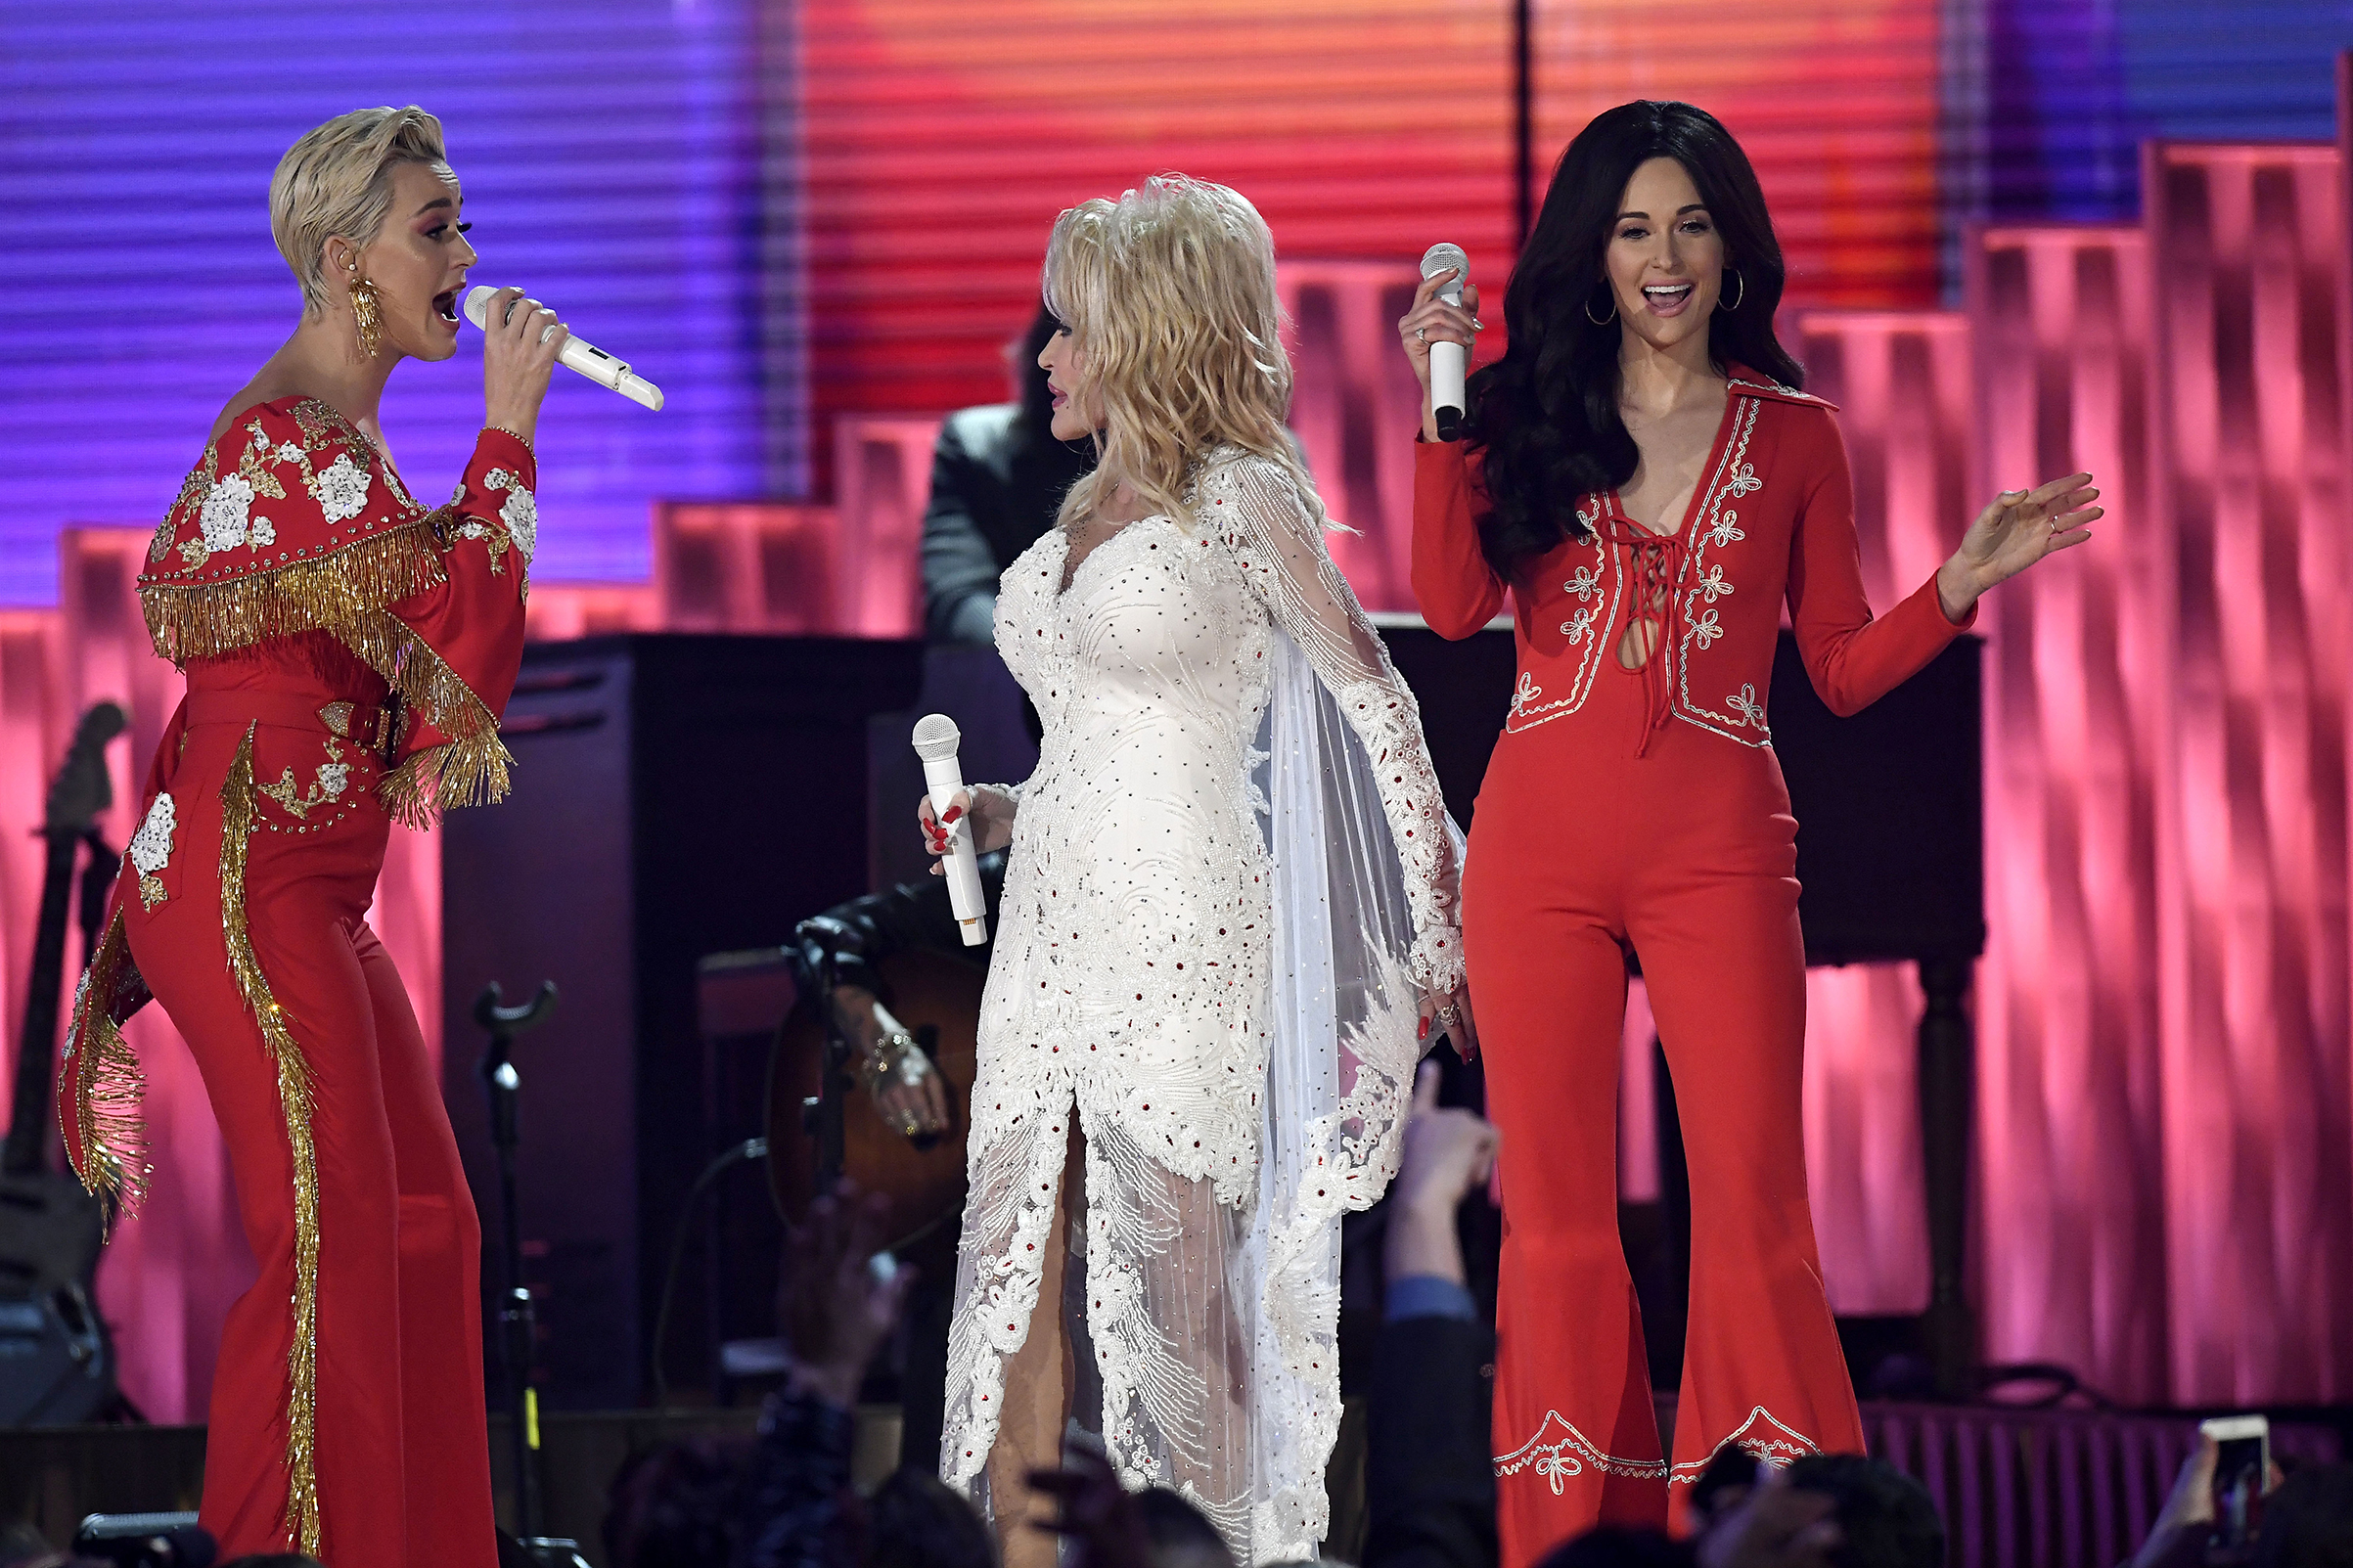 Katy Perry, Dolly Parton and Kacey Musgraves perform onstage during the 61st Annual GRAMMY Awards at Staples Center on Feb. 10, 2019 in Los Angeles.